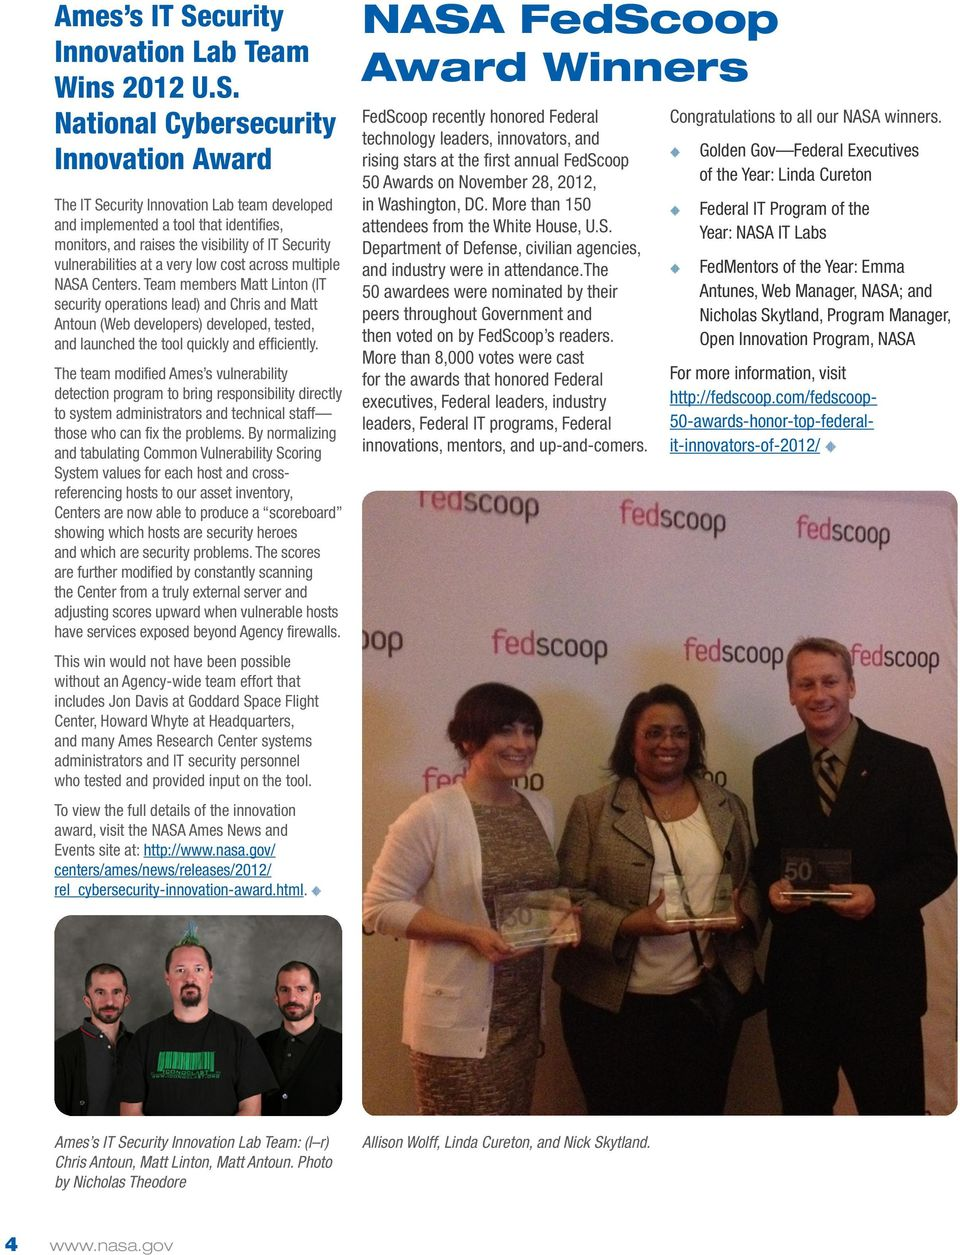 National Cybersecurity Innovation Award The IT Security Innovation Lab team developed and implemented a tool that identifies, monitors, and raises the visibility of IT Security vulnerabilities at a